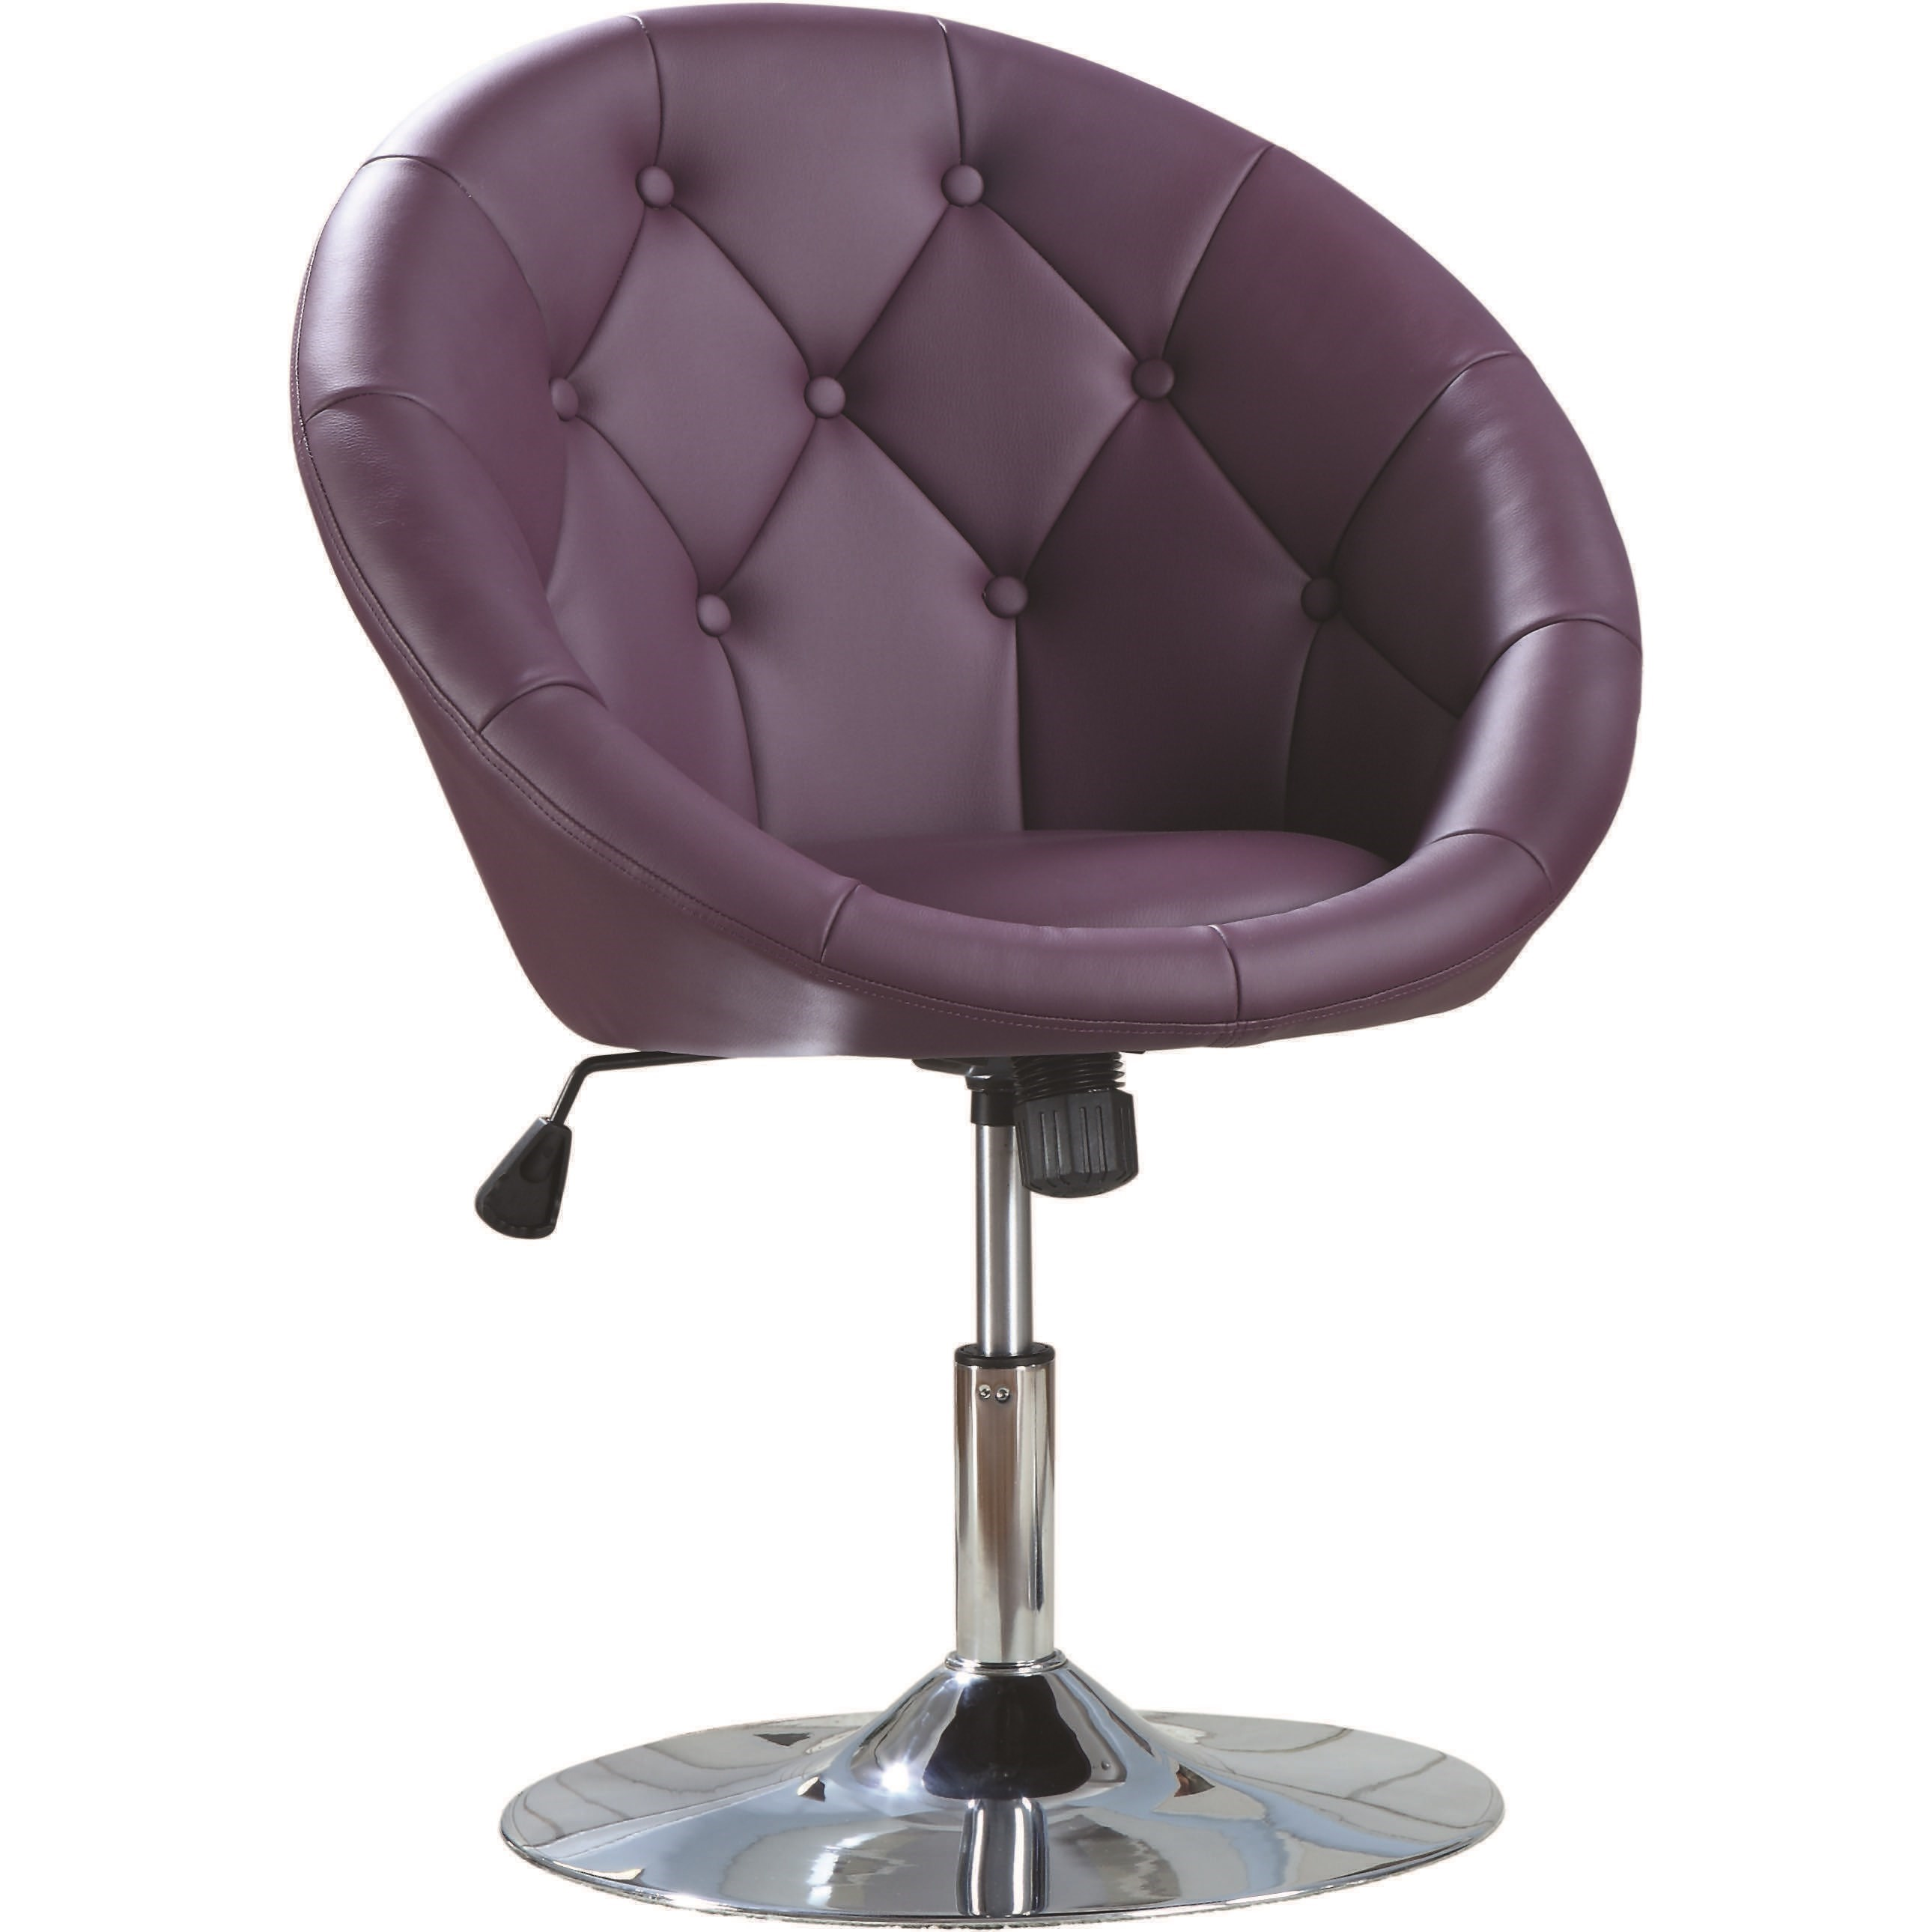 Dining Chairs and Bar Stools Swivel Chair (Purple) by Coaster at Lapeer Furniture & Mattress Center